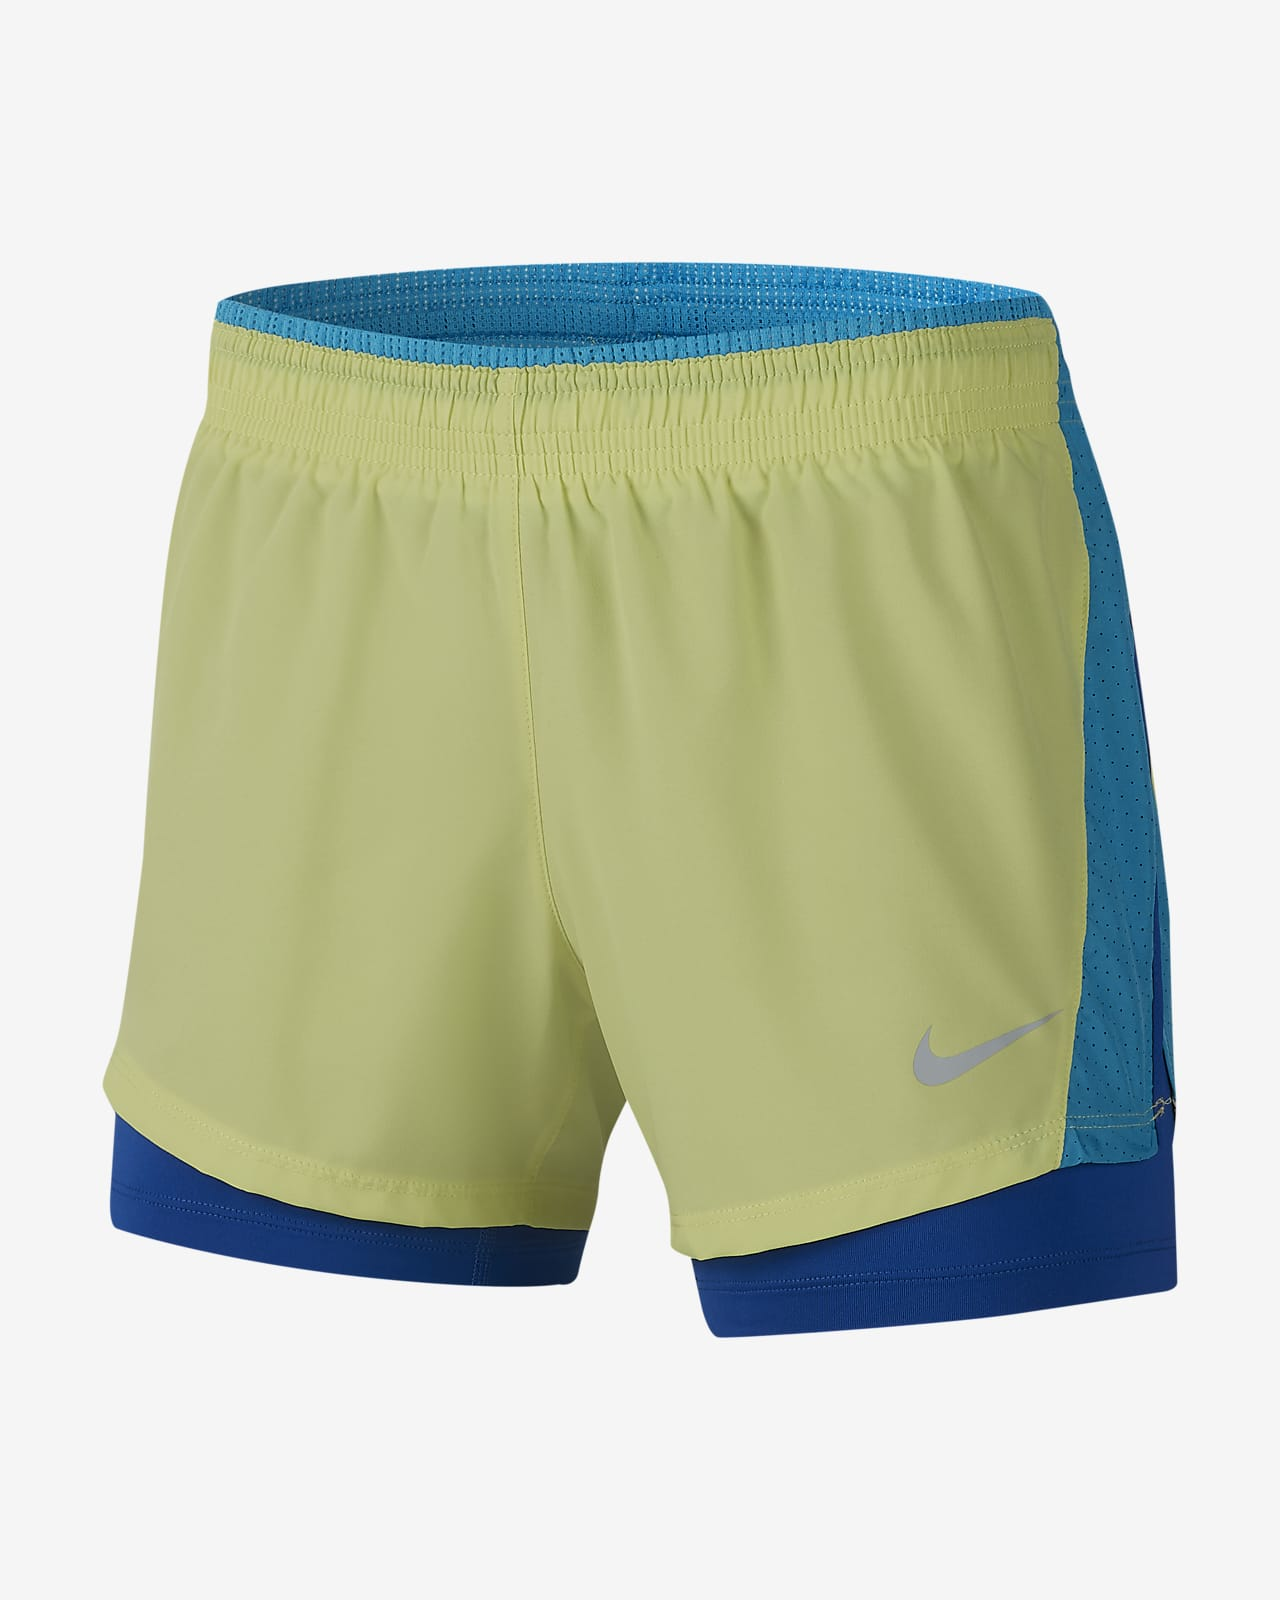 Nike Women's 2-In-1 Running Shorts